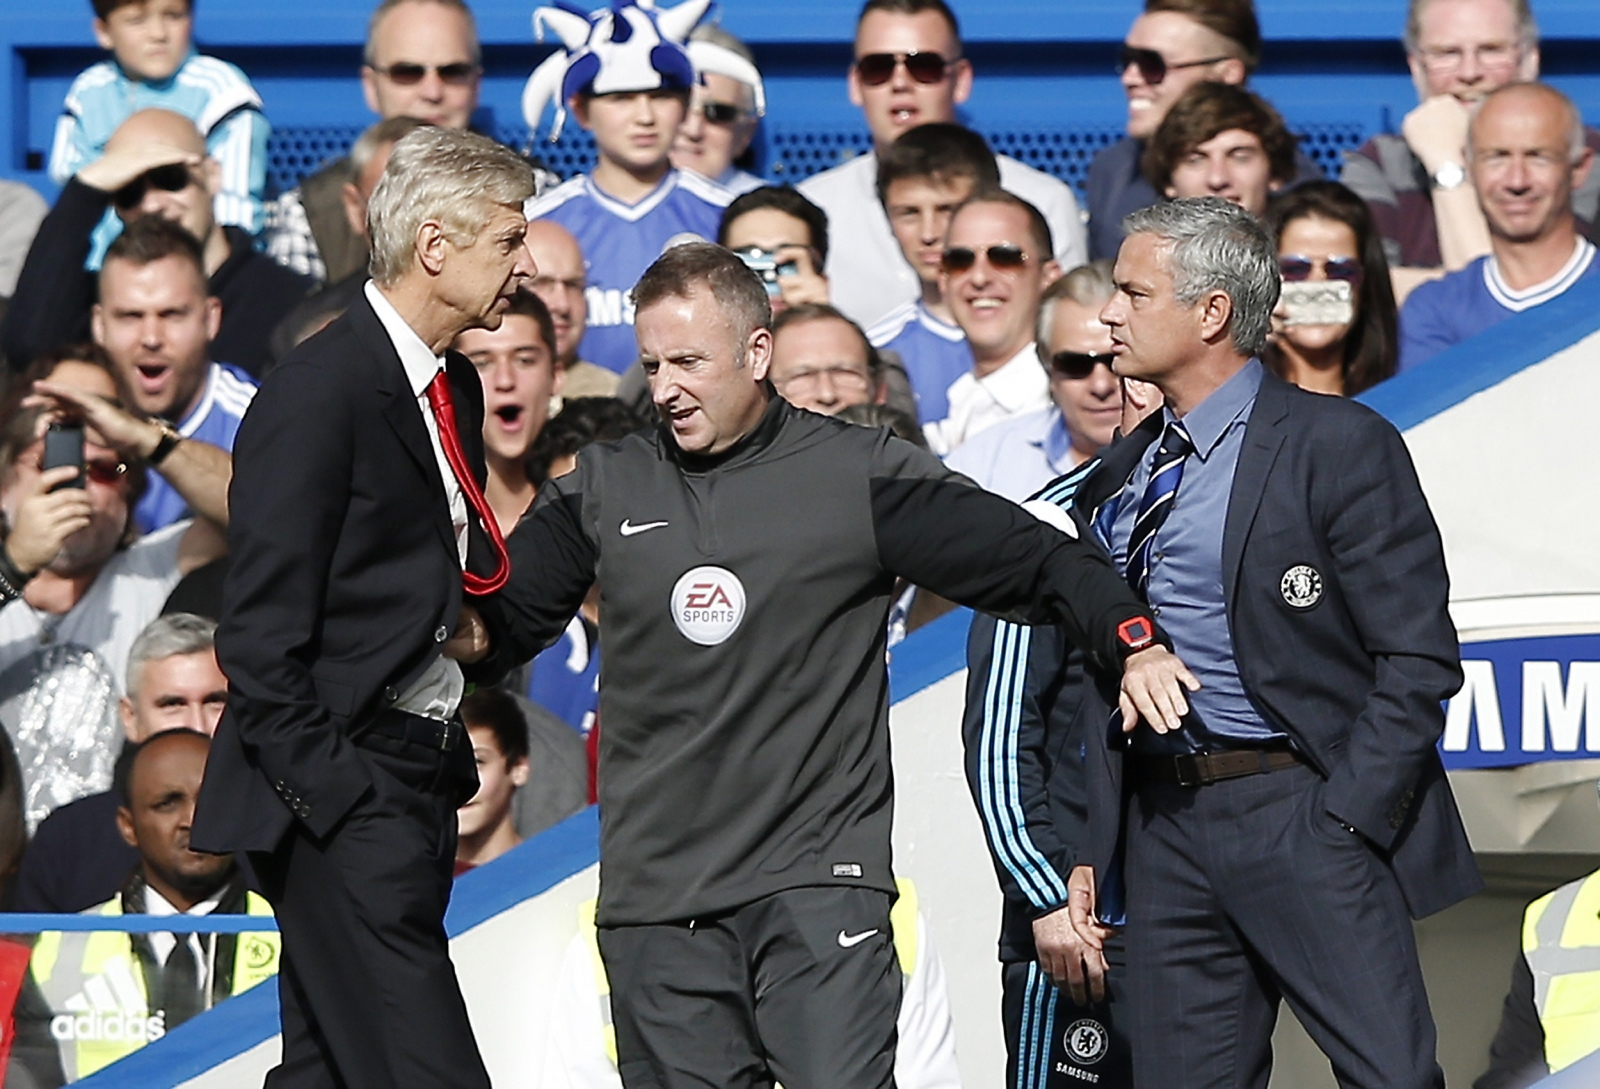 Arsene Wenger reacts to alleged Mourinho 'break his face' comment